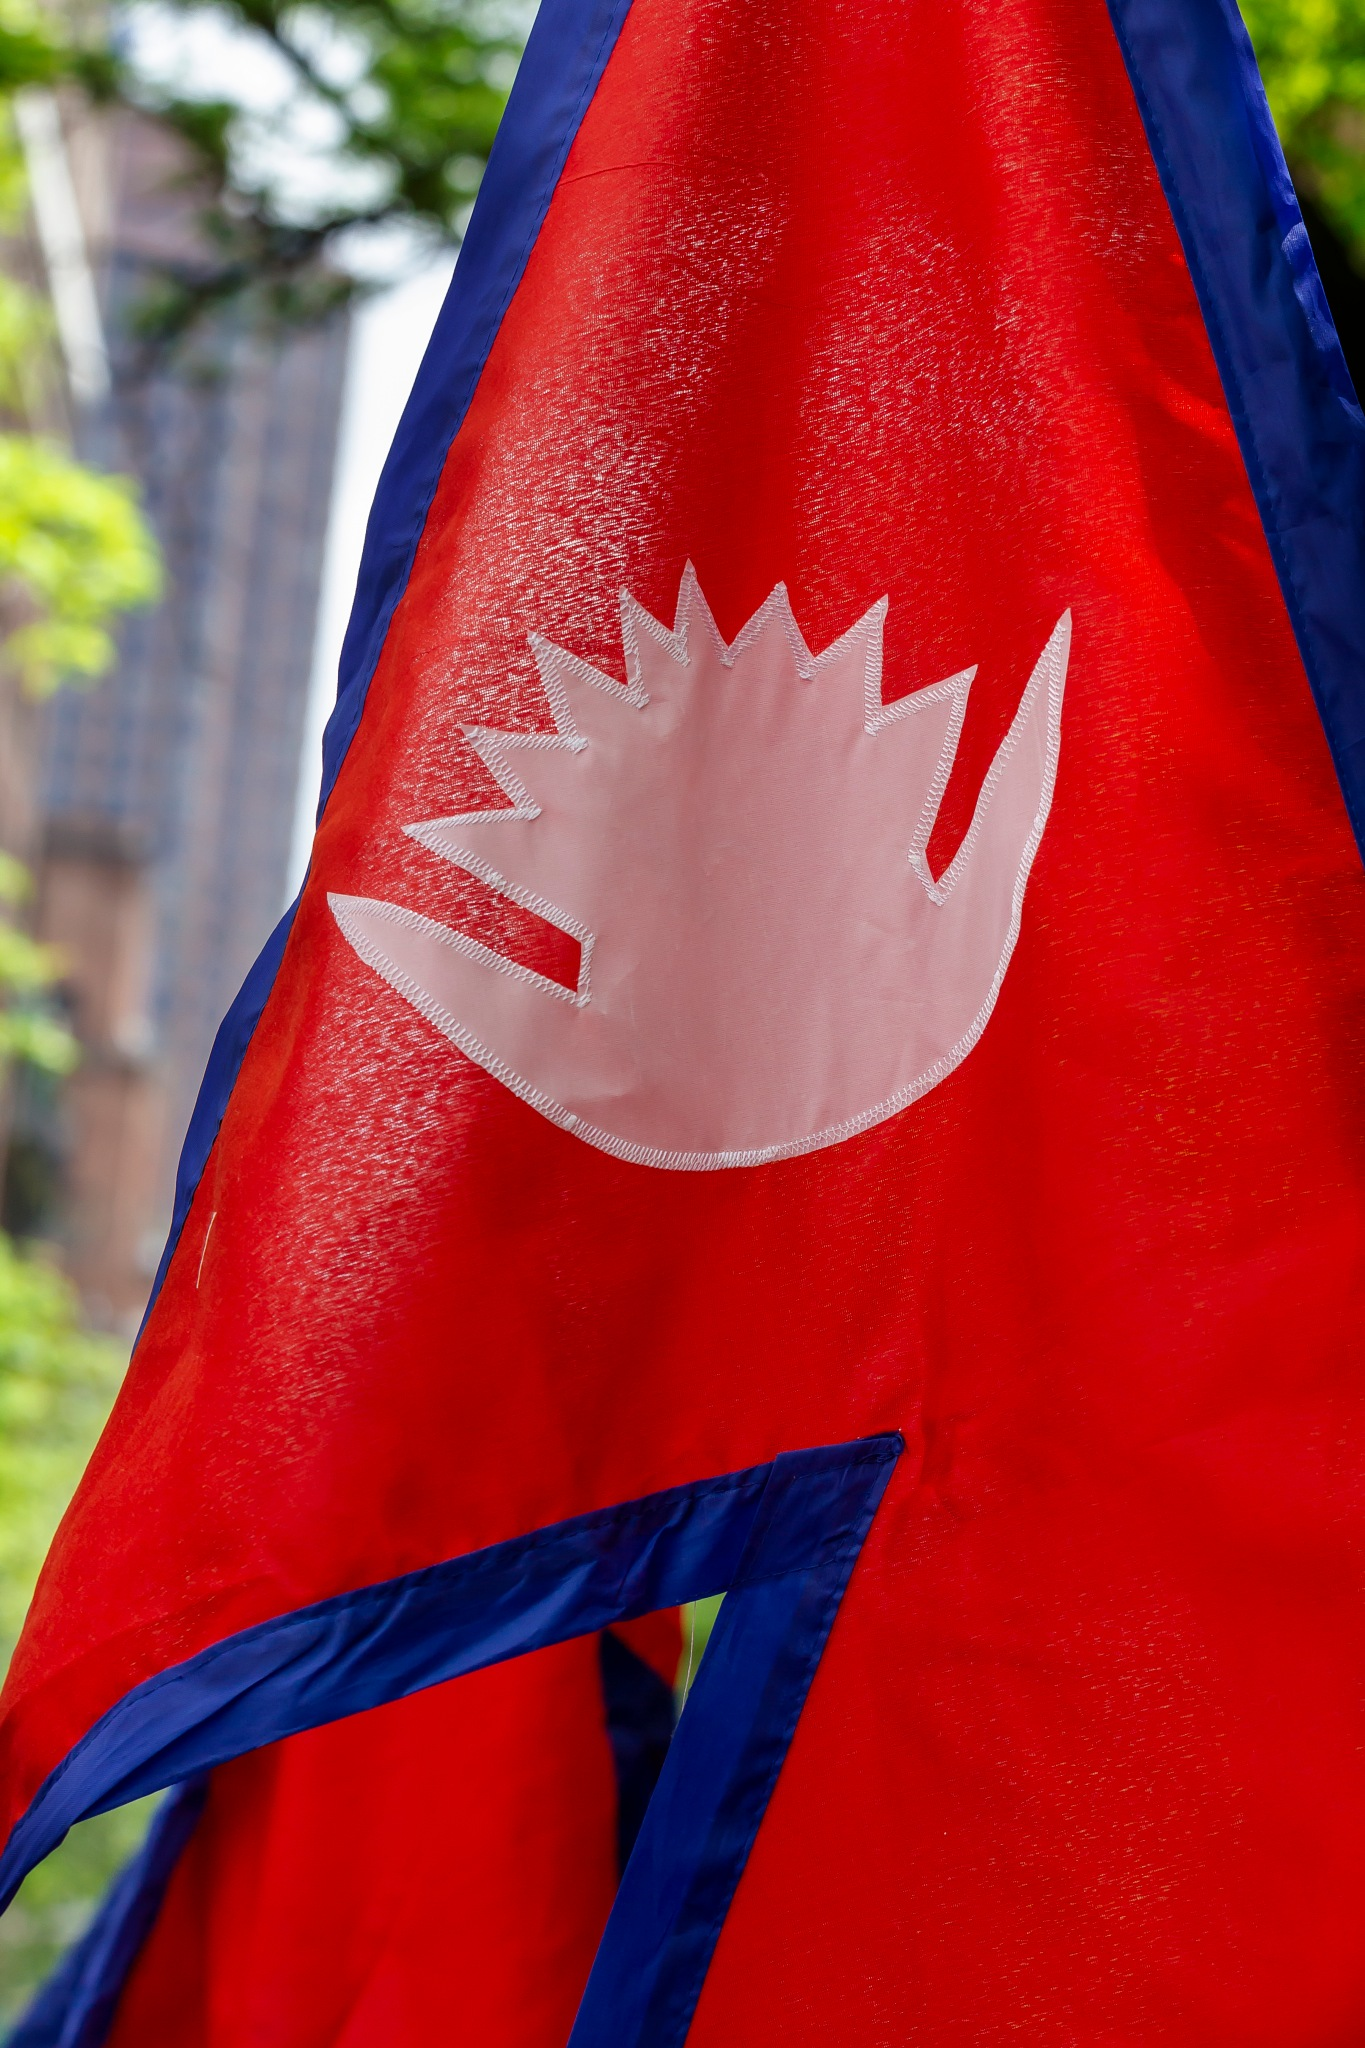 Nepalese Flag - Nepal Day NYC 2018 by robertullmann